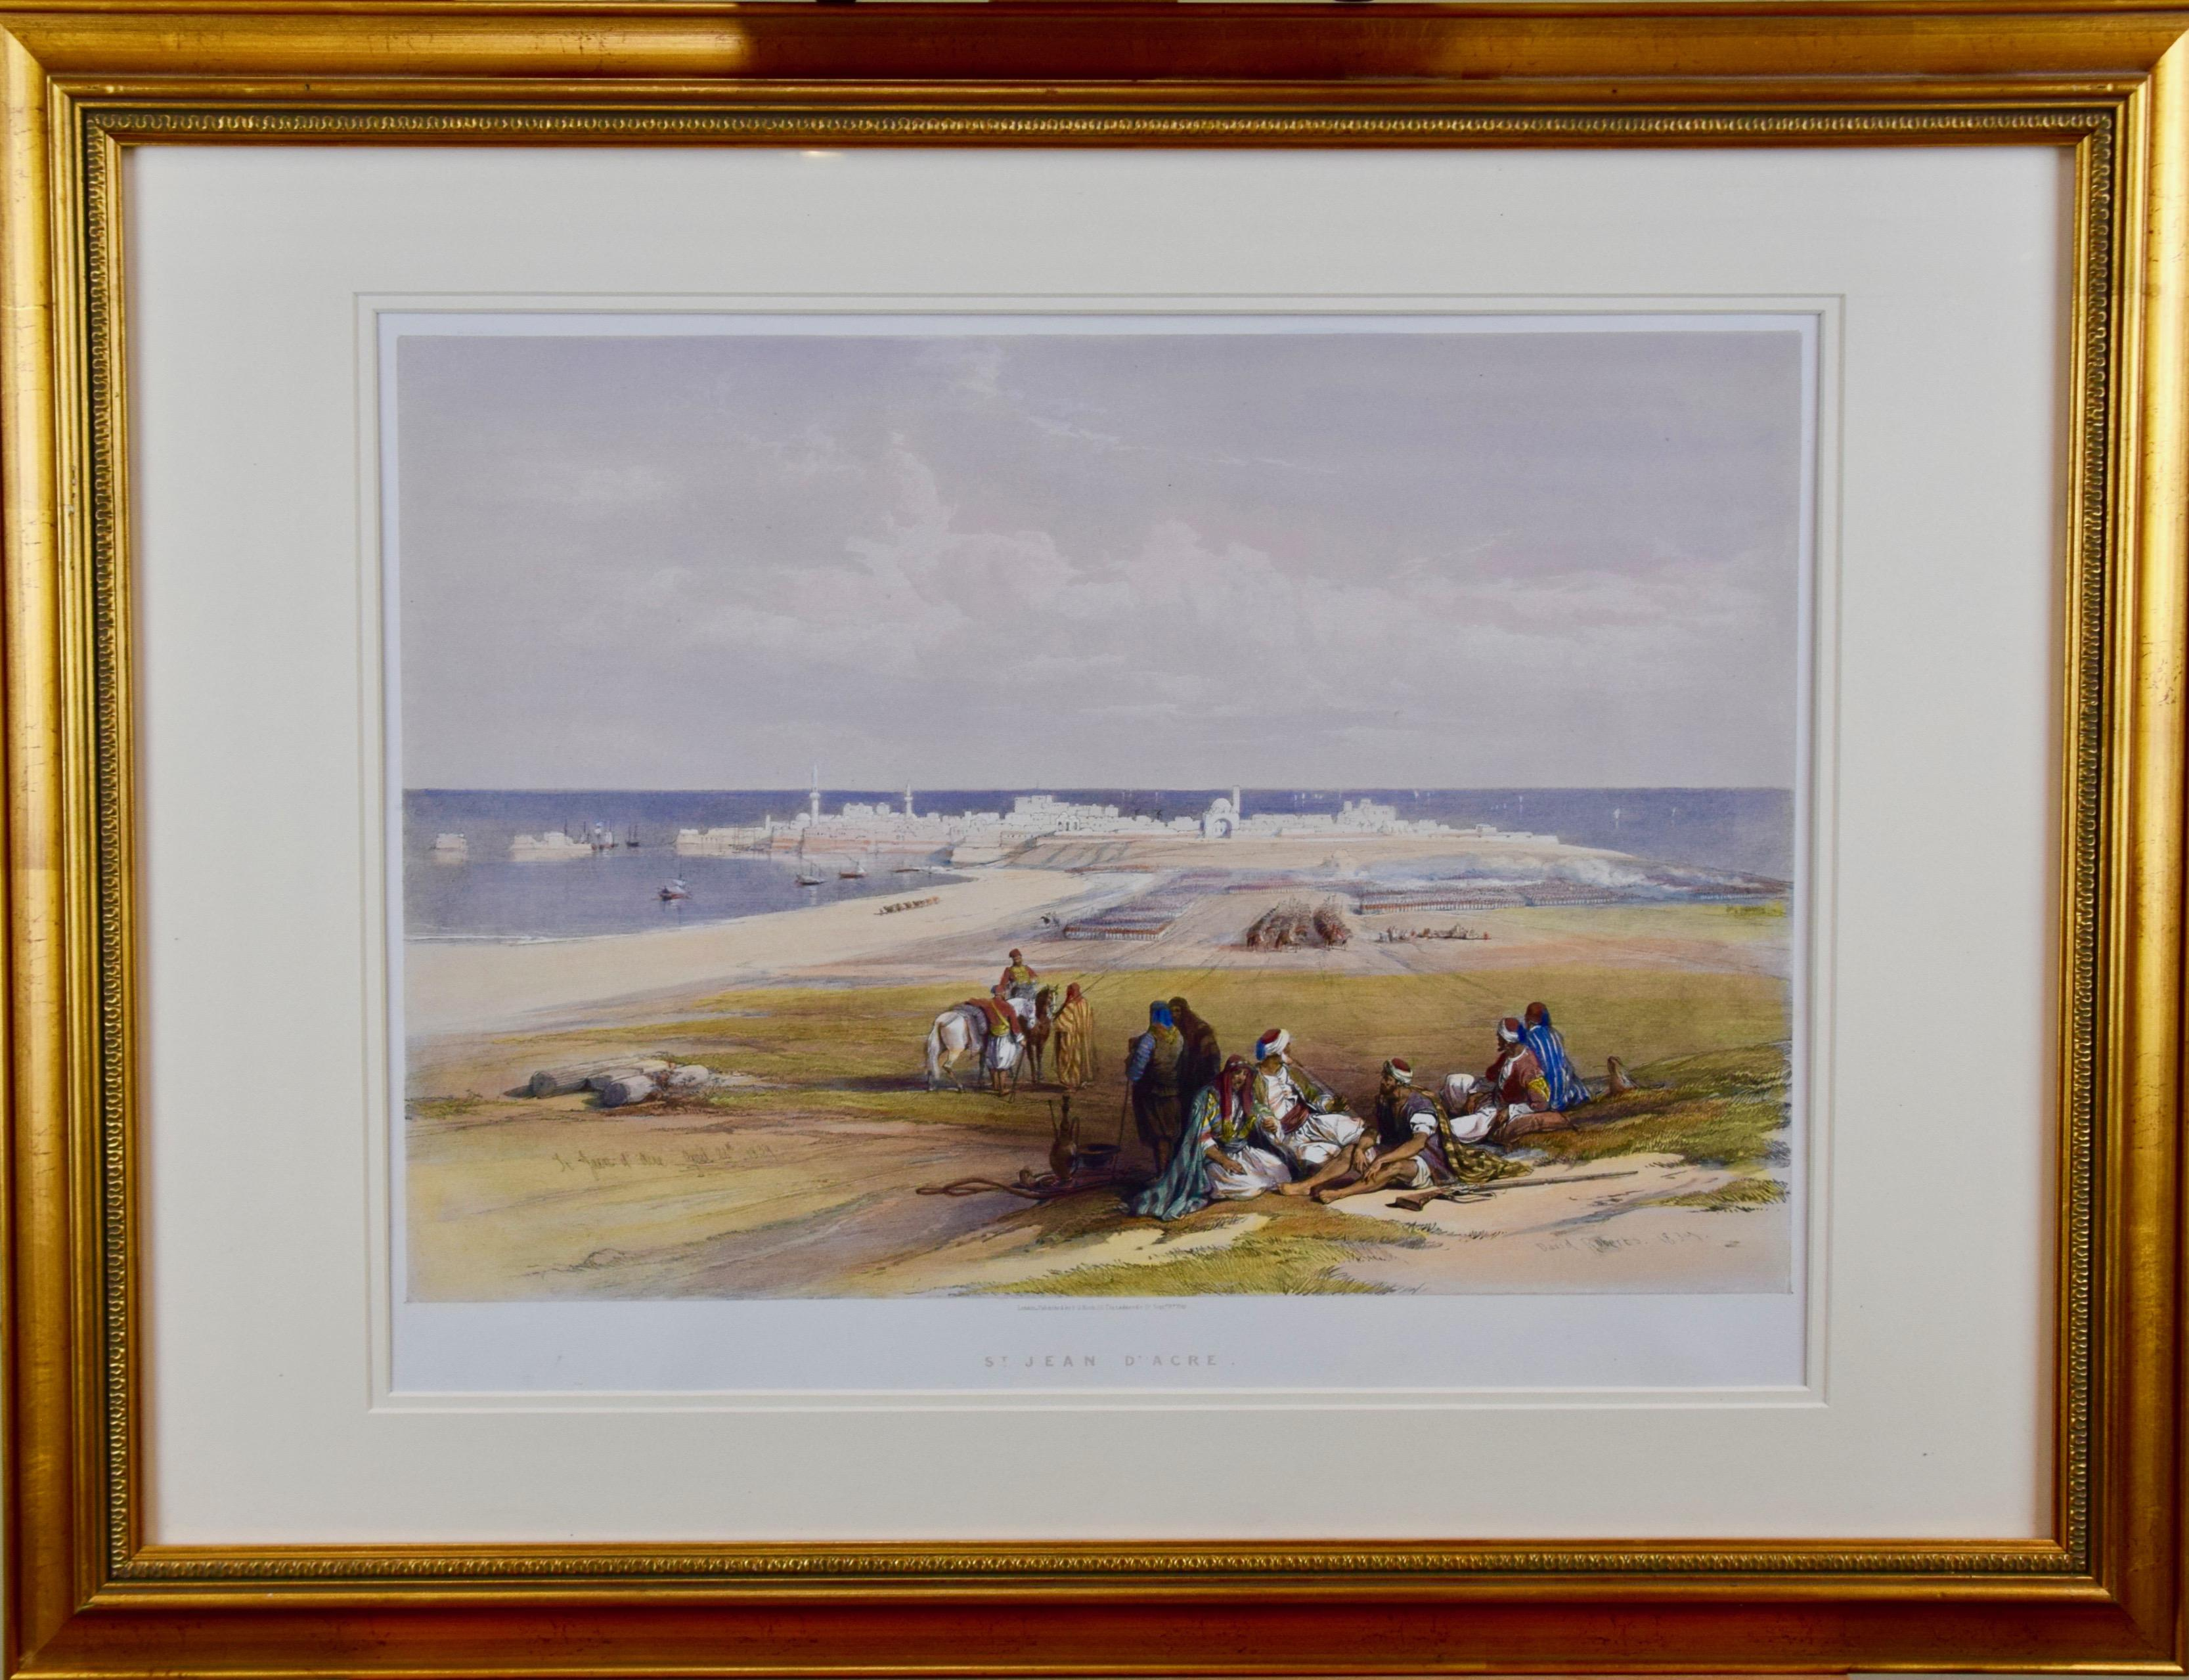 David Roberts' 19th Century Hand Colored Lithograph, St. Jean D'Acre